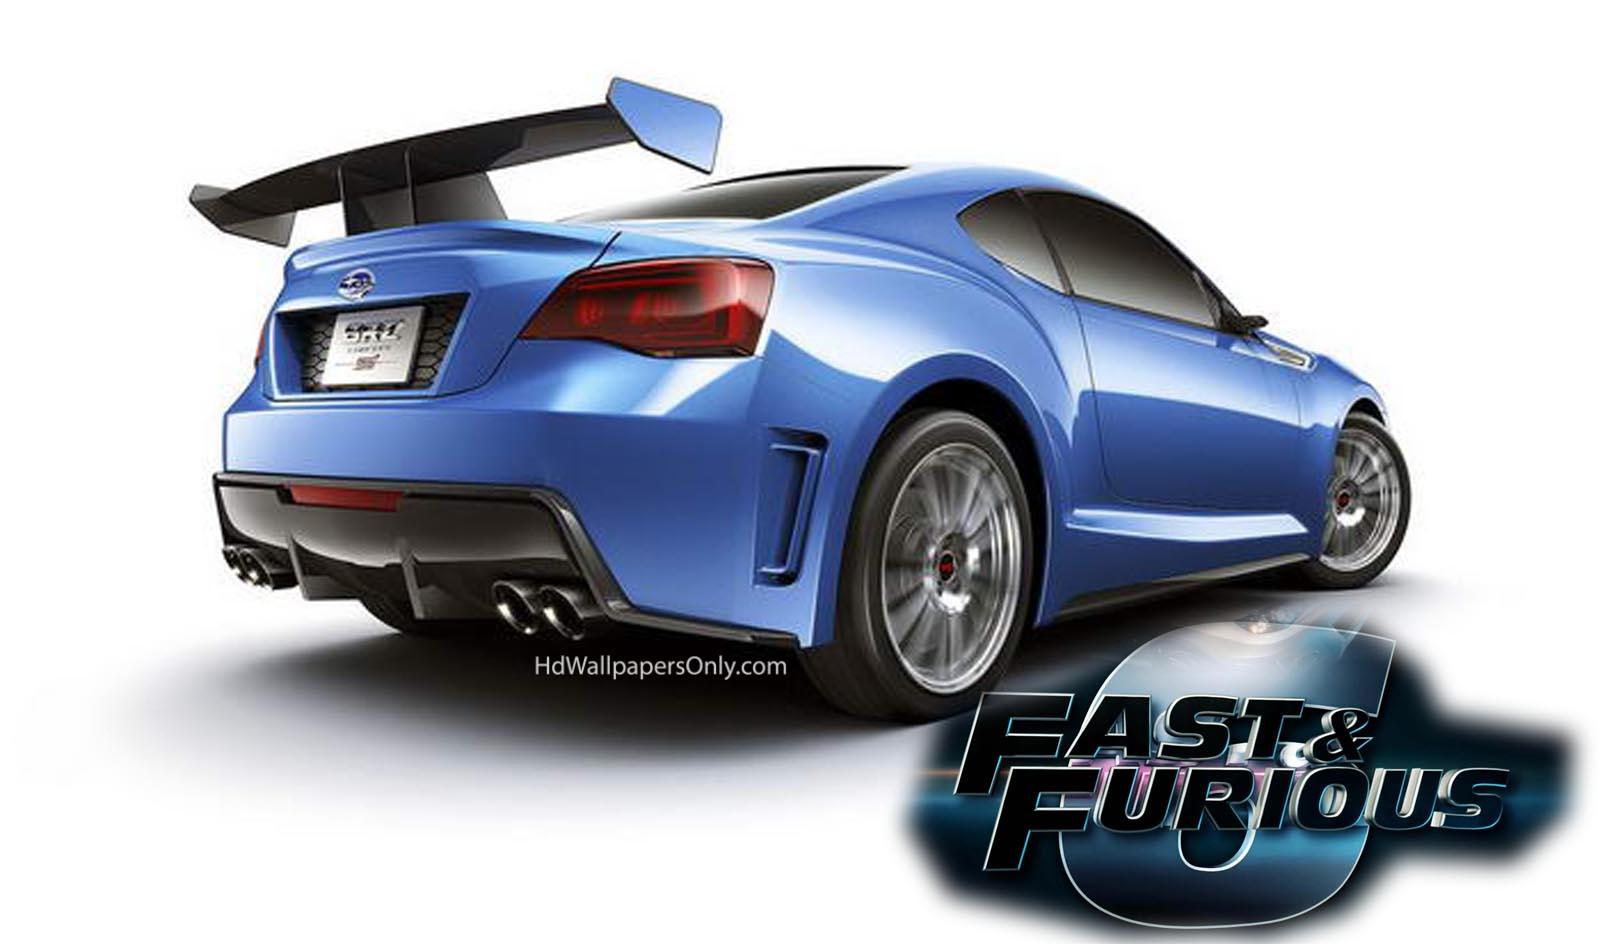 8 Fast And Furious Cars Wallpapers Top Free 8 Fast And Furious